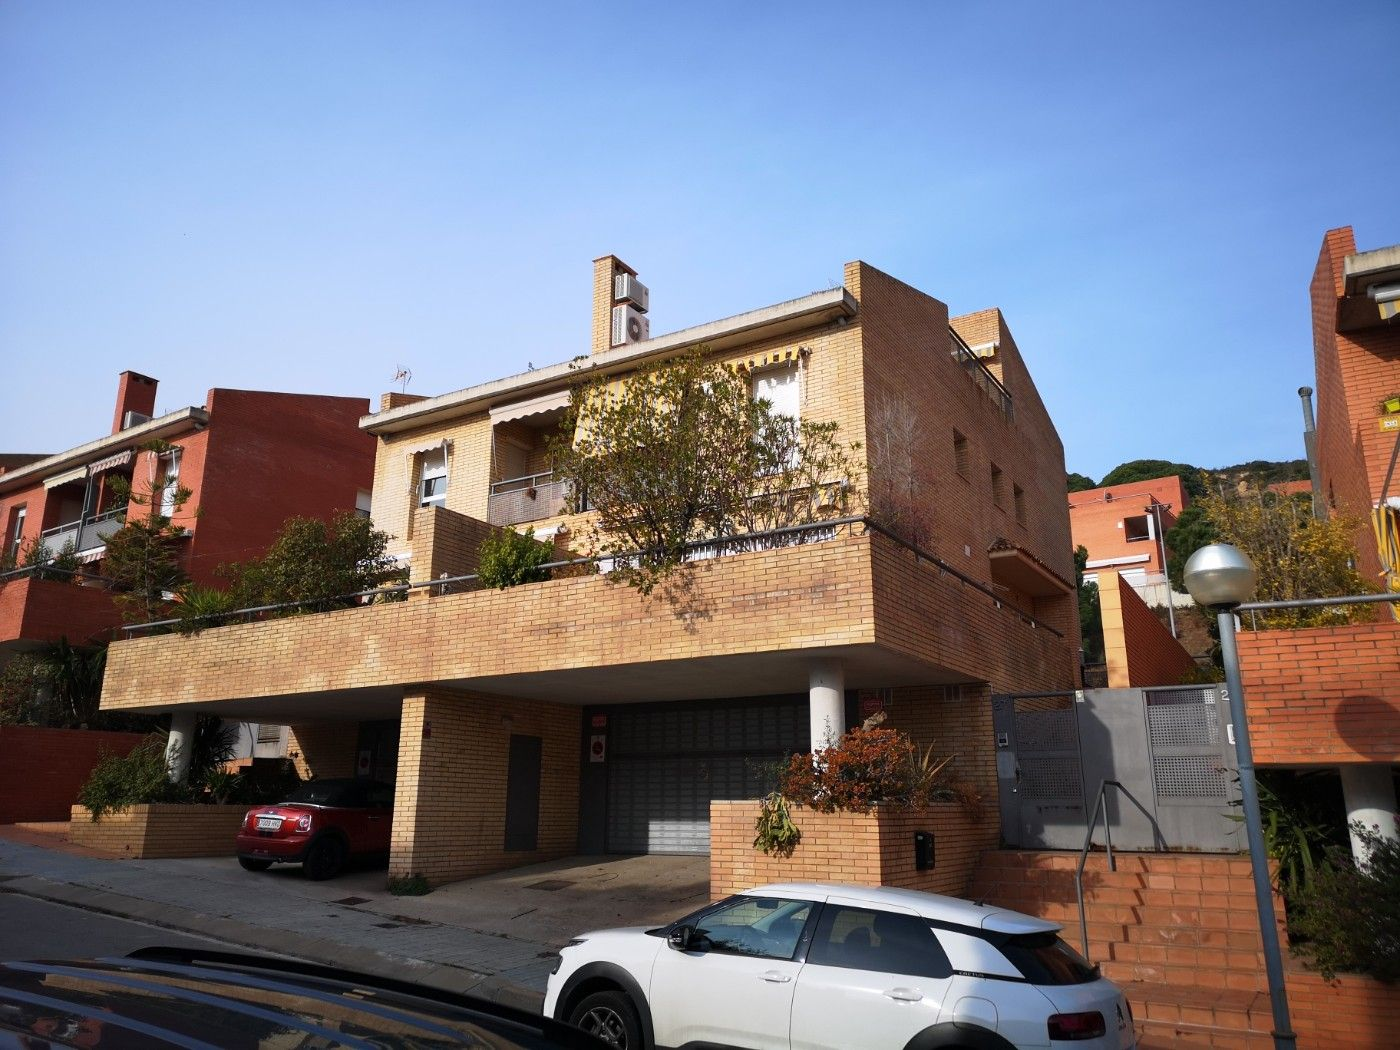 Towny house in Carrer artemis, 27. ¡¡¡negociable!!! con piscina